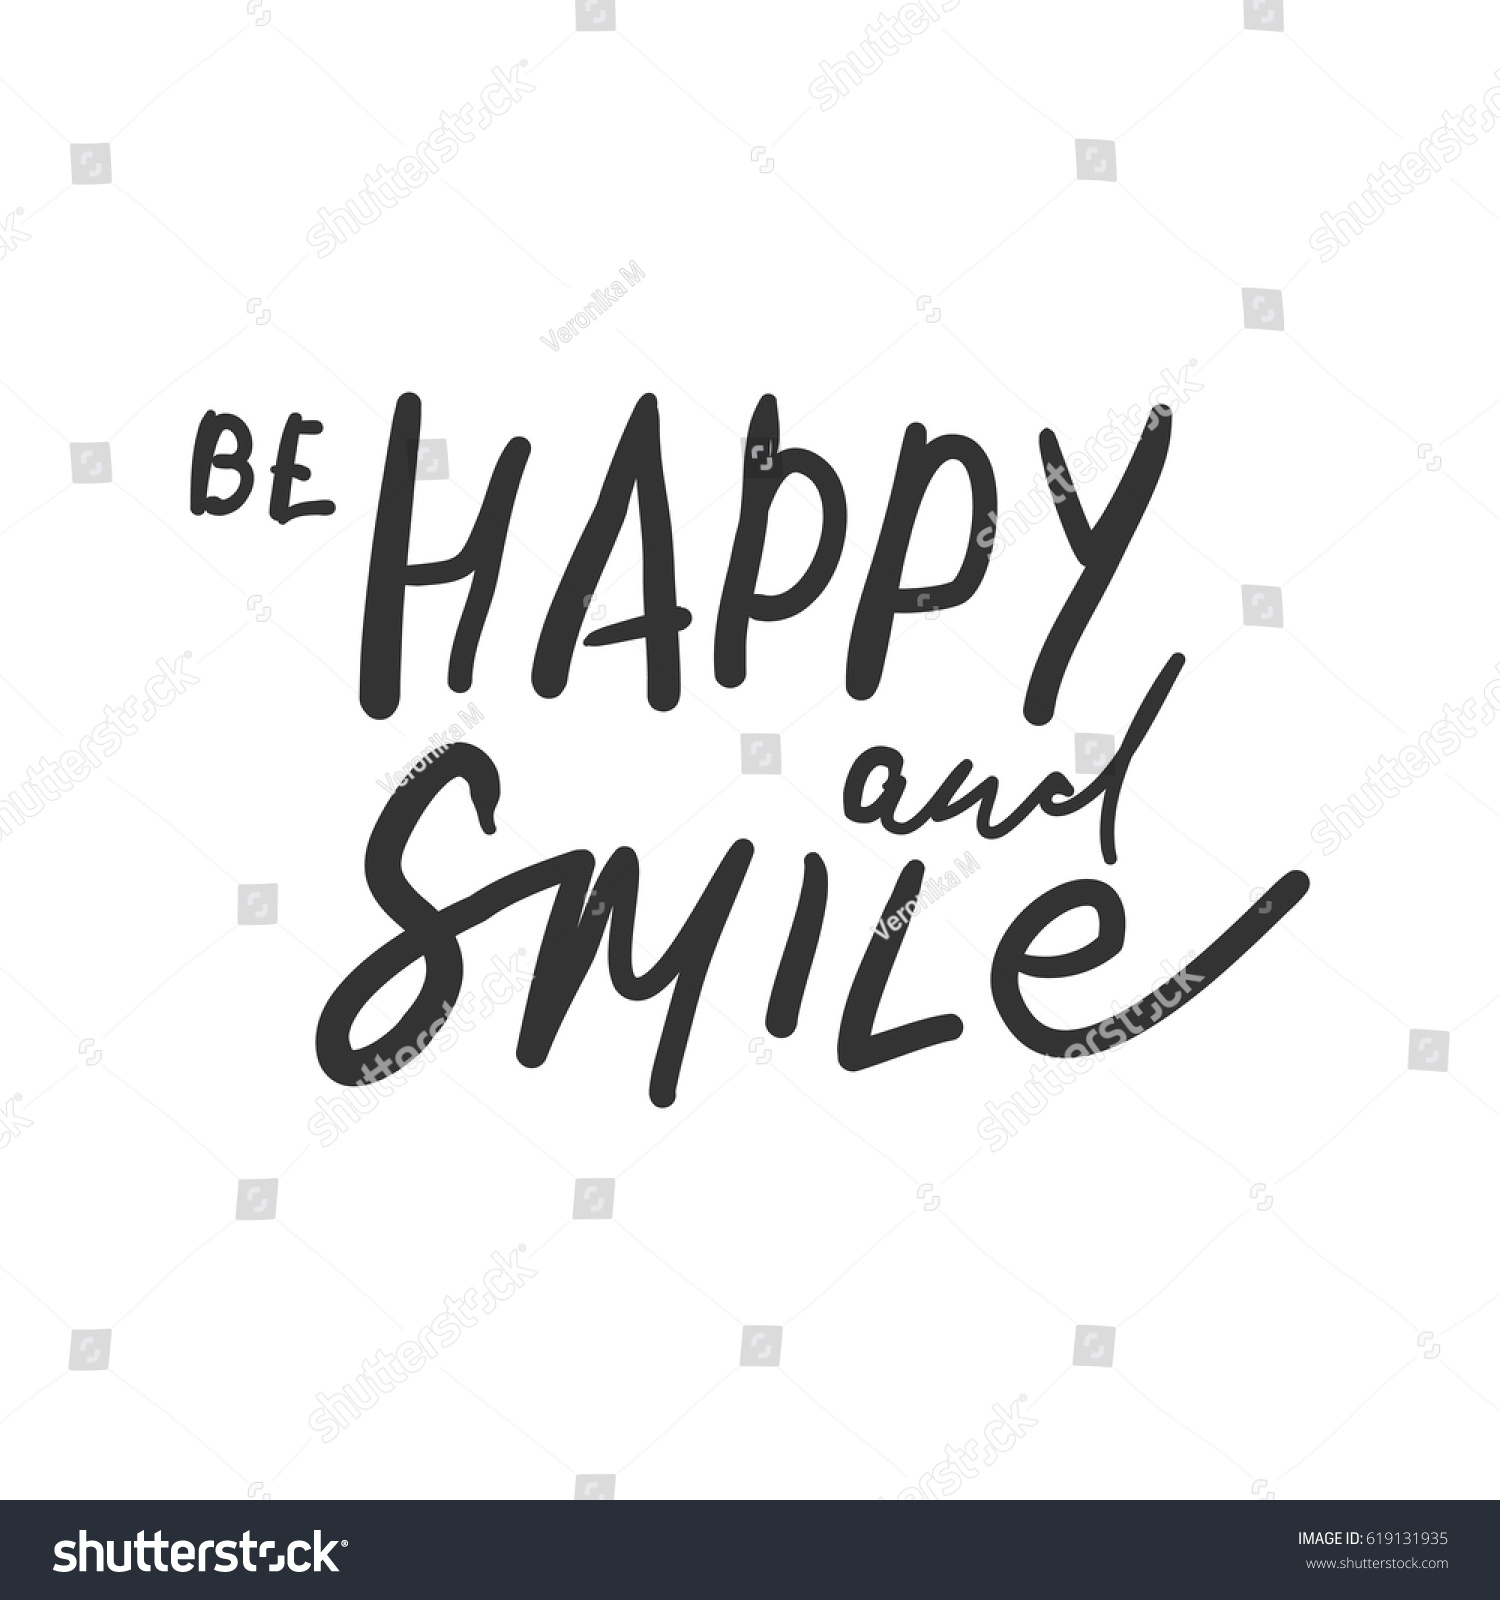 be happy and smile quotes about happiness hand lettering modern calligraphic design